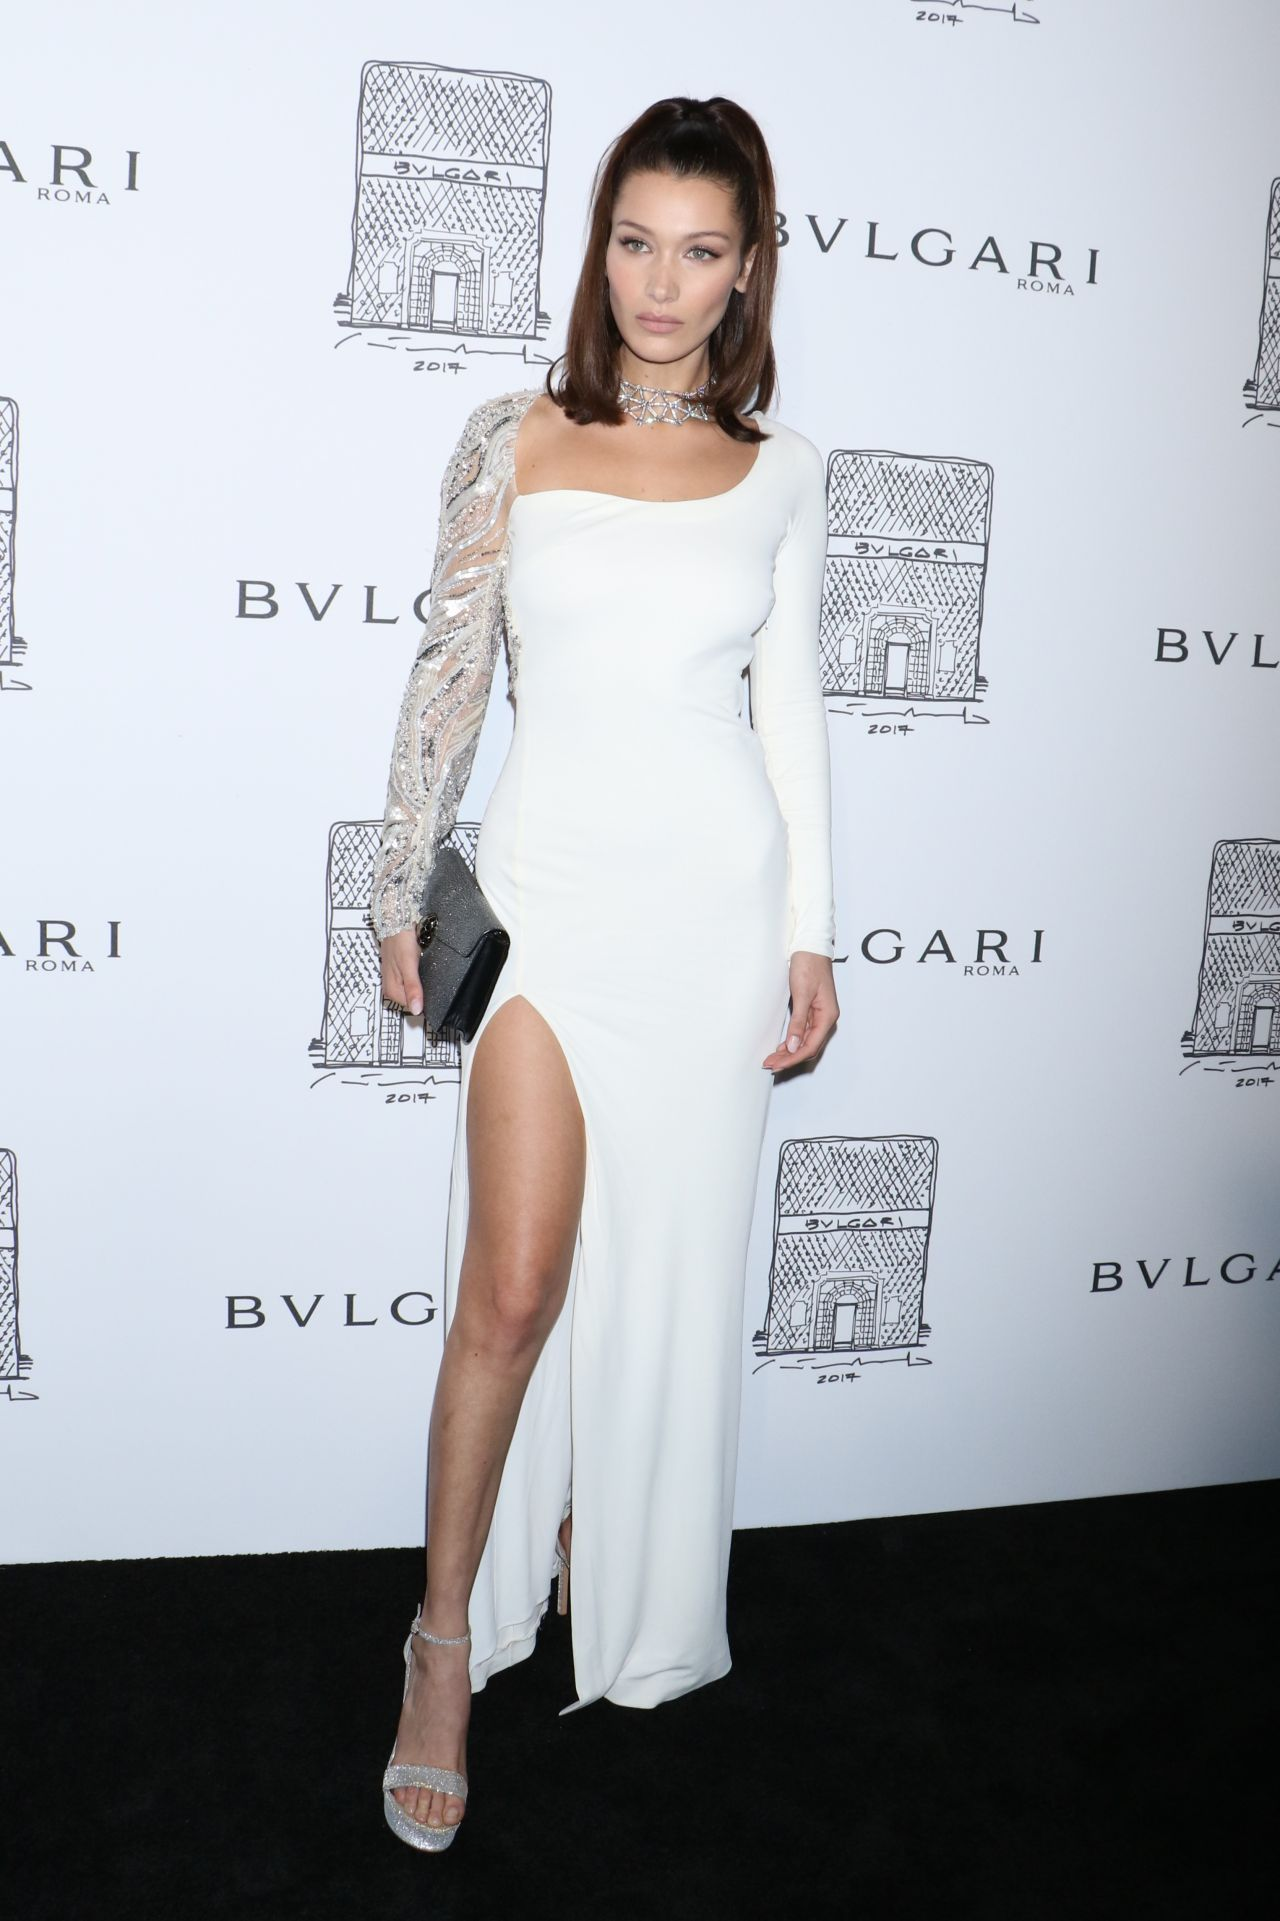 7e1e7397195 Bella Hadid attends Bulgari Celebrates 5th Avenue Flagship Store Opening on  Friday night (October 21) in New York City. She is wearing a Roberto  Cavalli ...